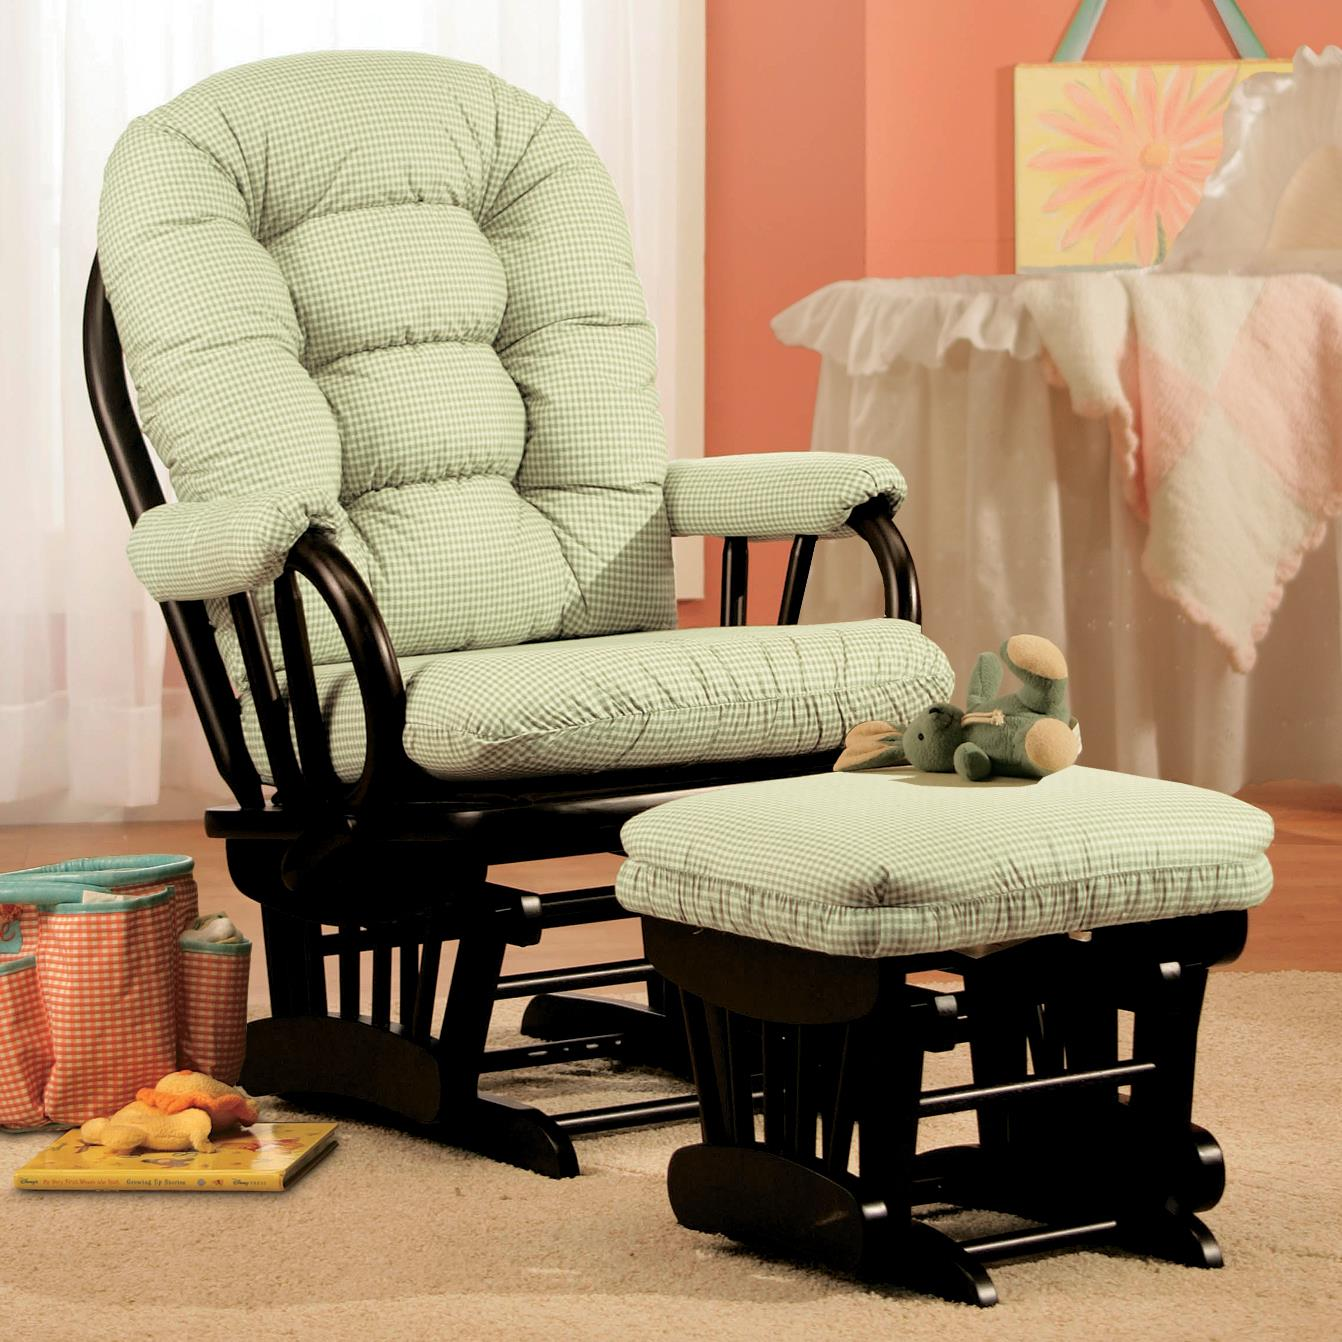 Storytime Glider Rockers and Ottomans Sona Glider and Ottoman Set by Best Chairs Storytime Series at Best Home Furnishings